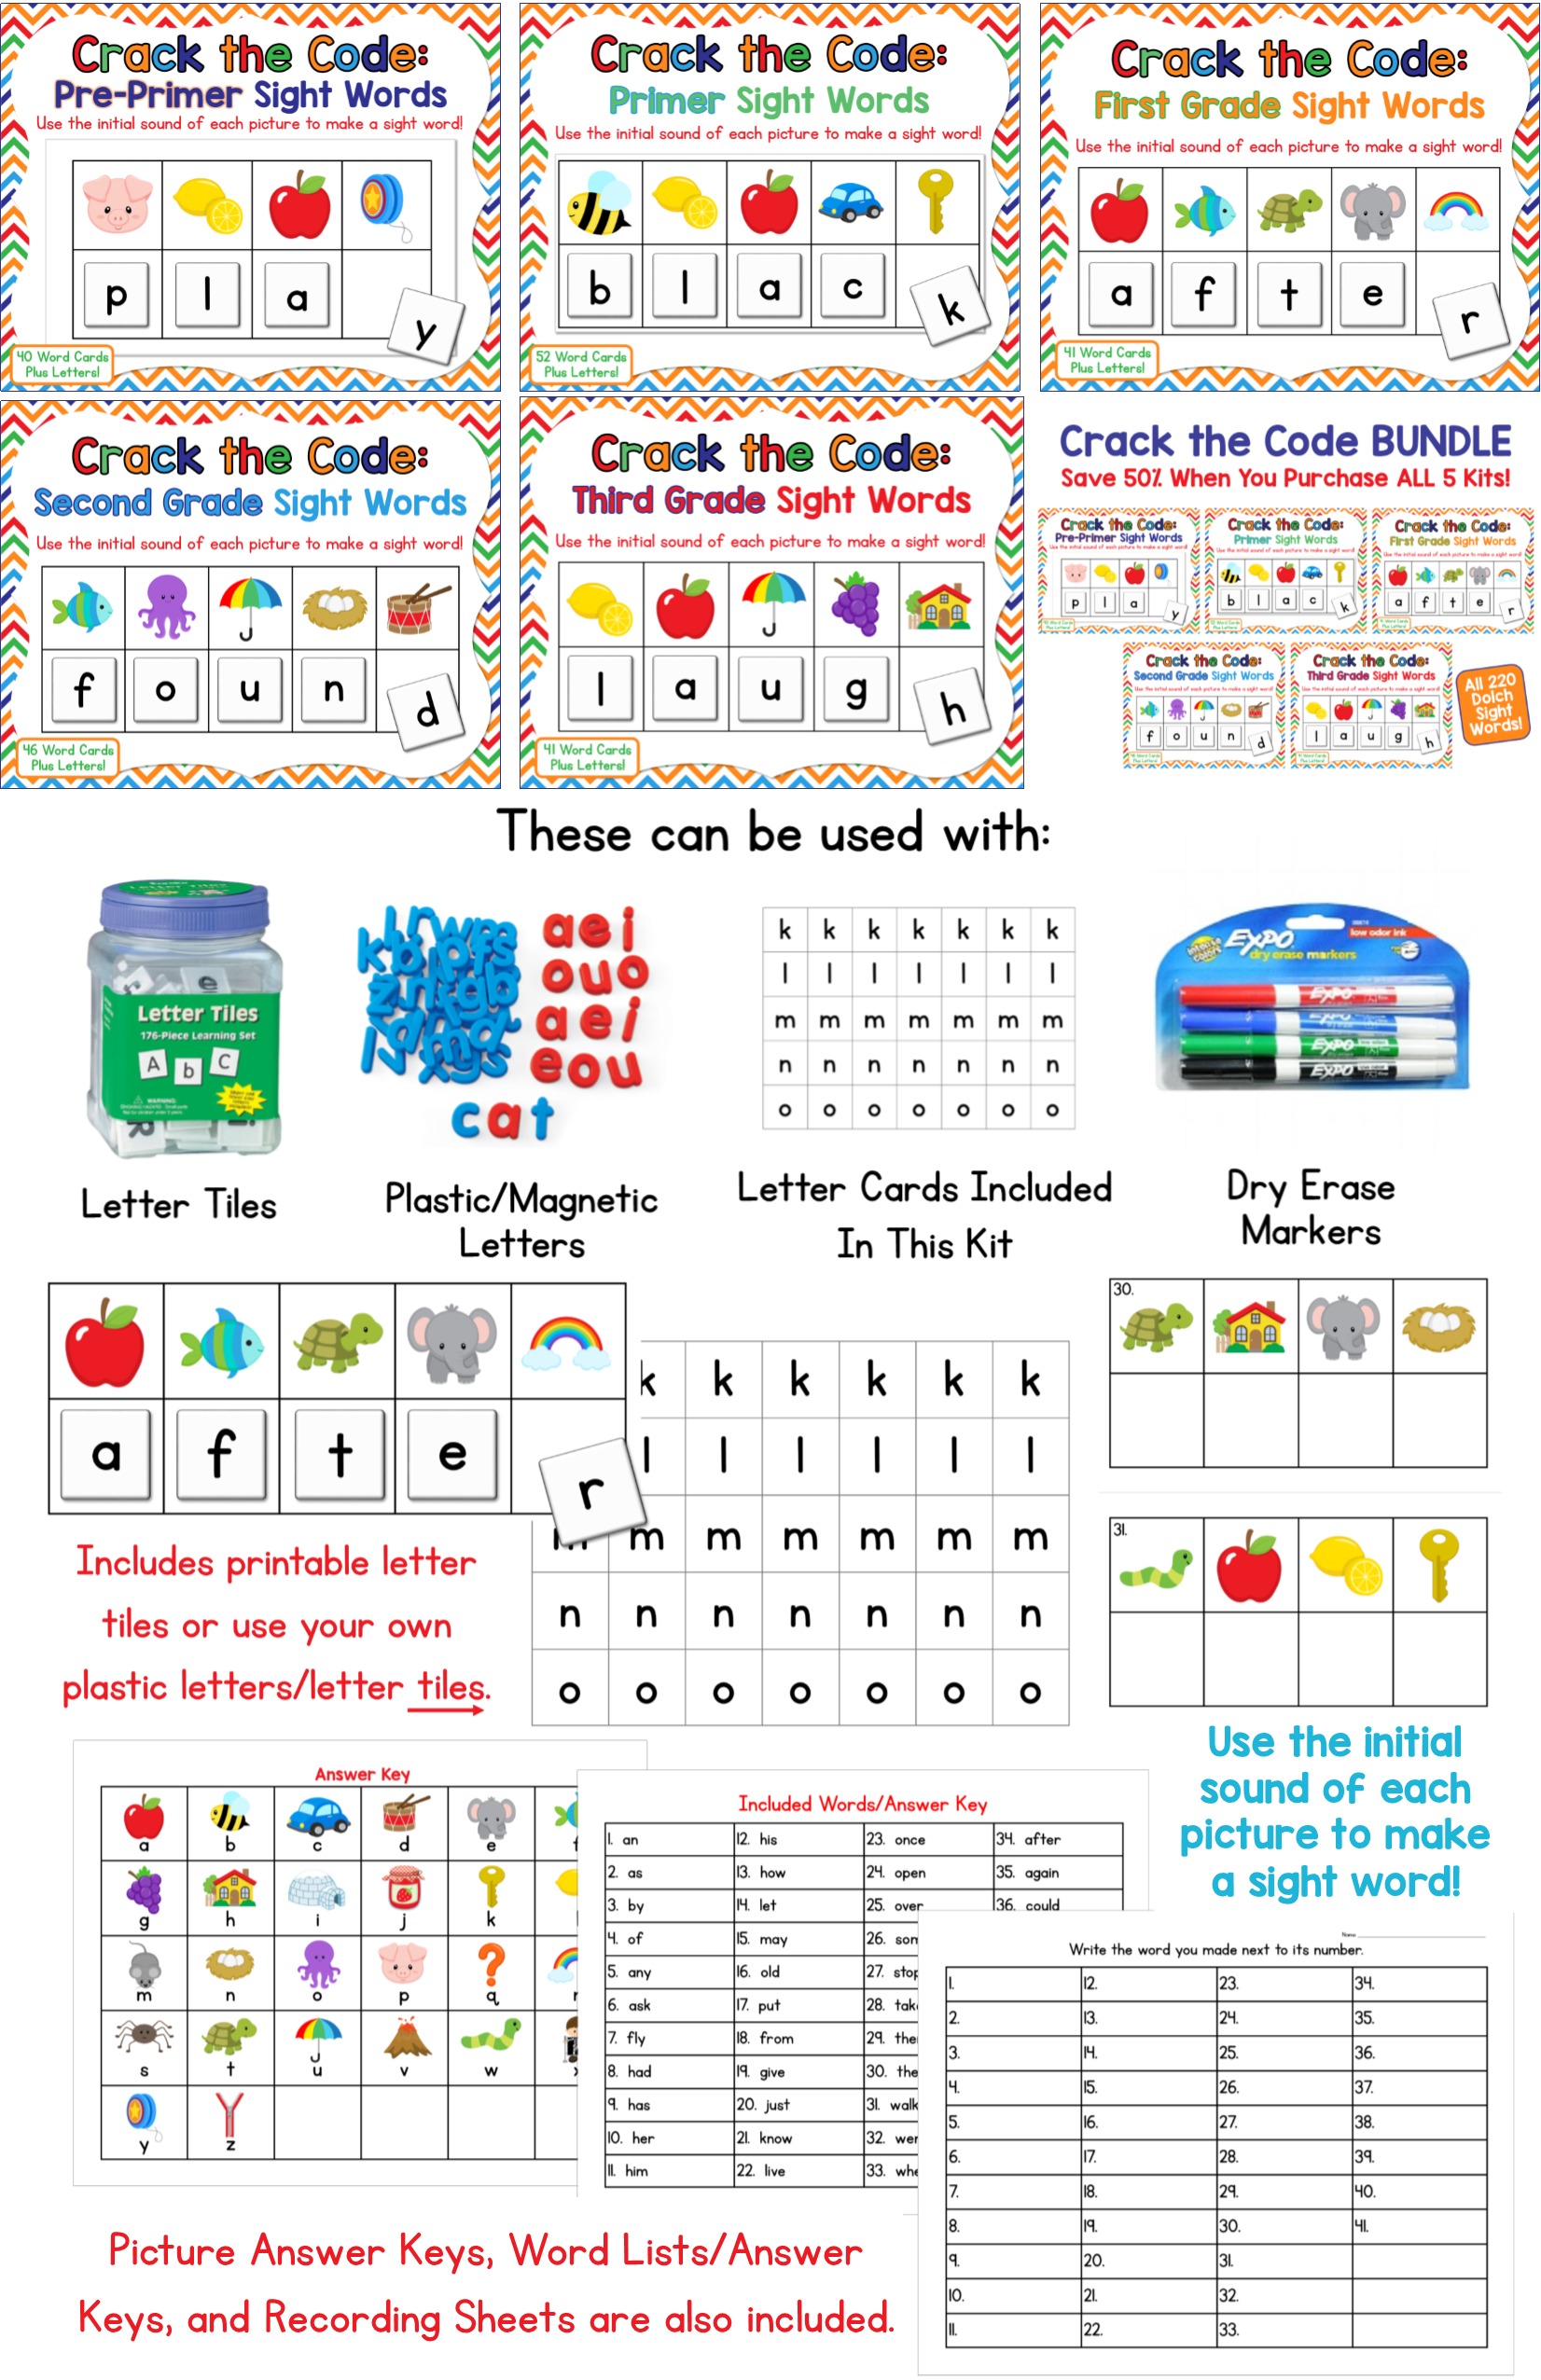 Crack The Code Dolch Sight Words Bundle Use Initial Sounds To Crack The Code